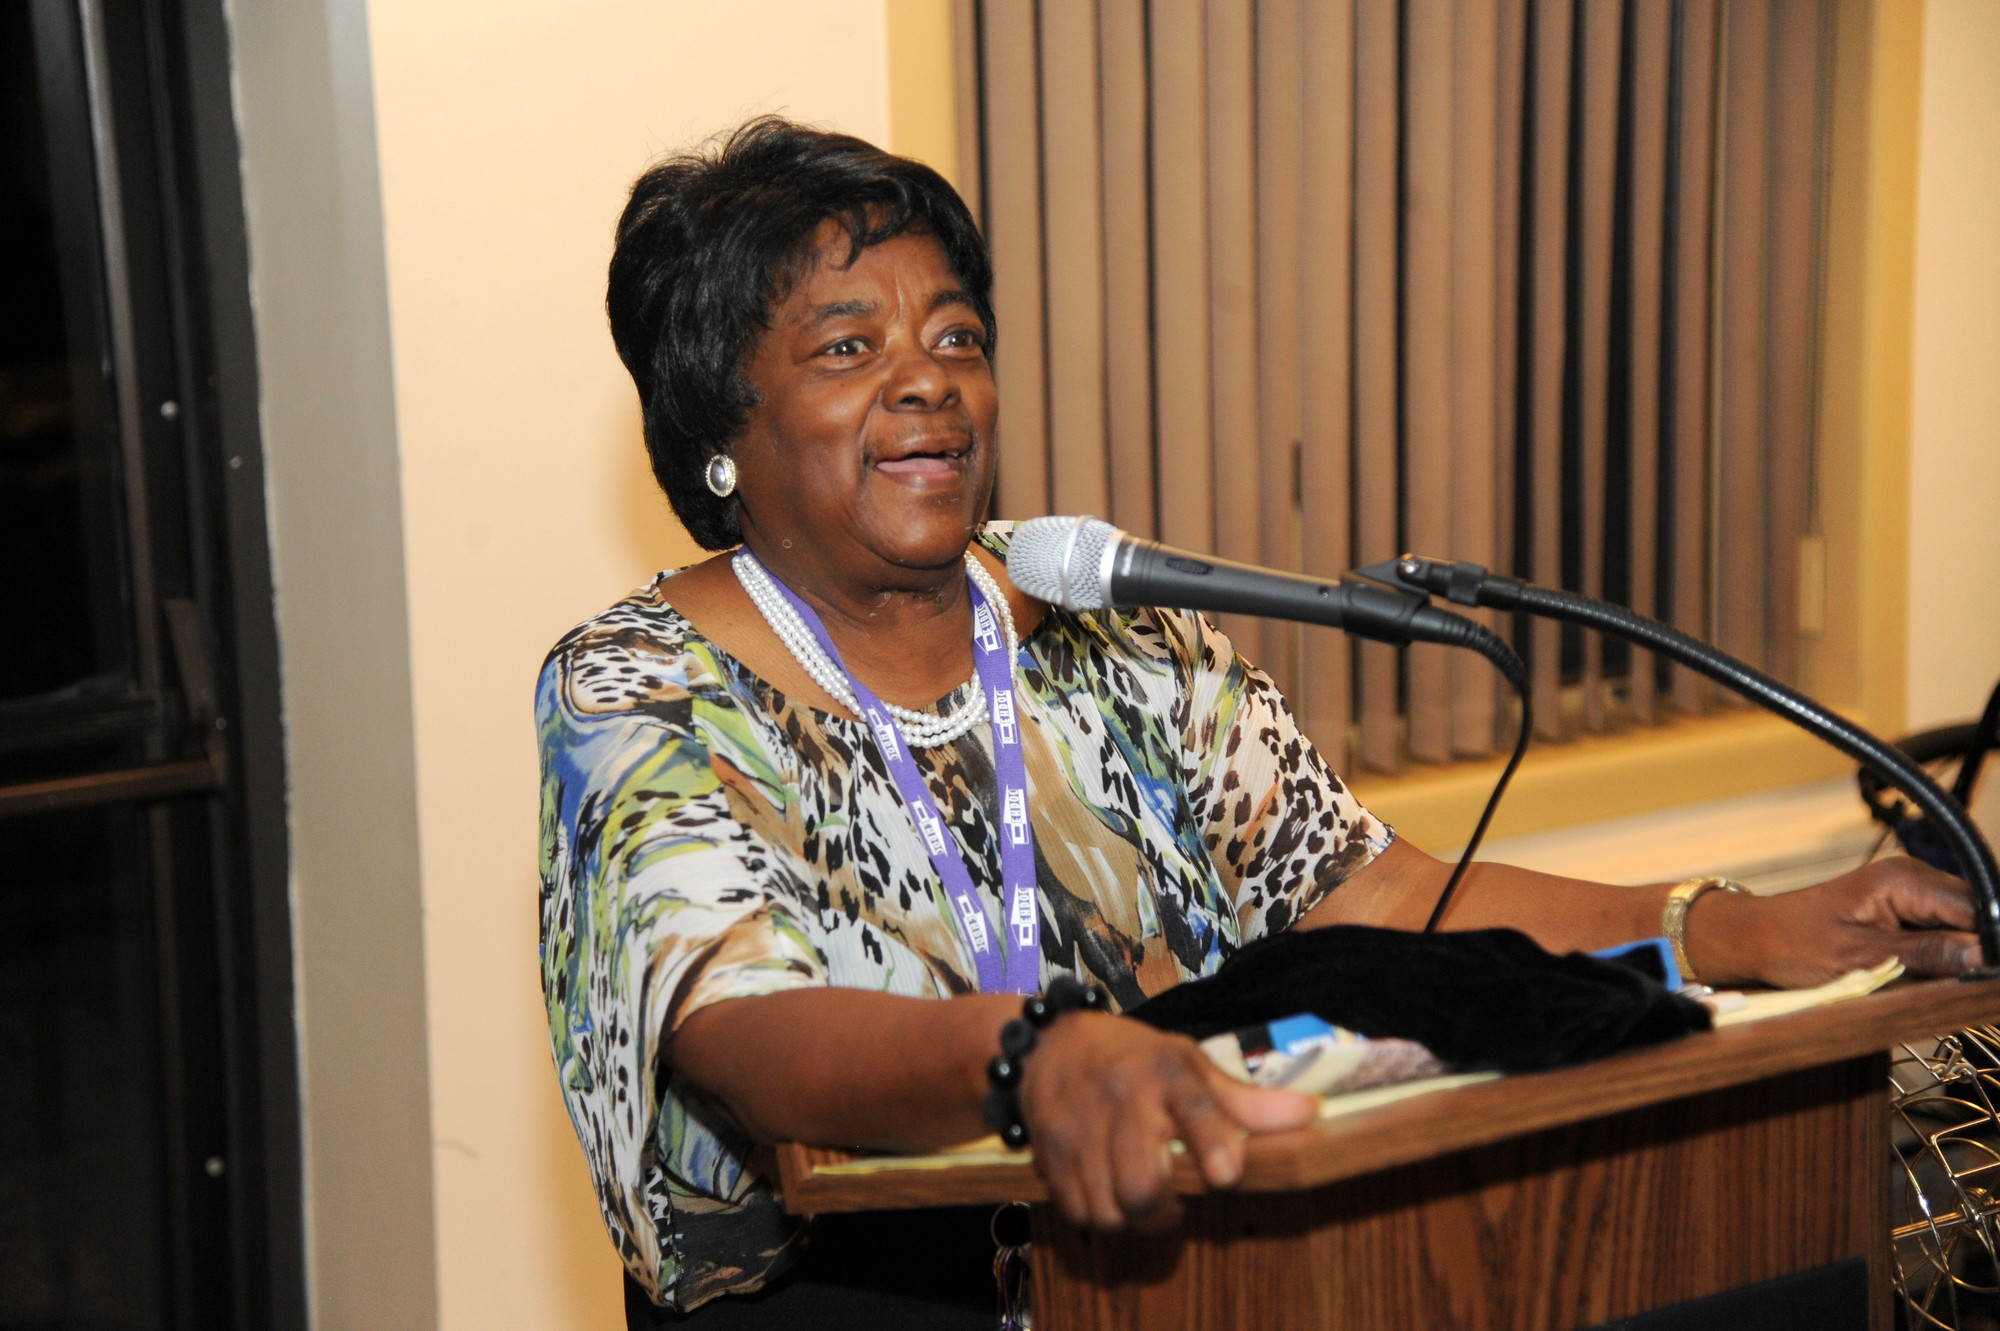 Director Juanita Warren, who is retiring after more than 20 years of service, addresses her family, staff and senior citizens at St. Mary